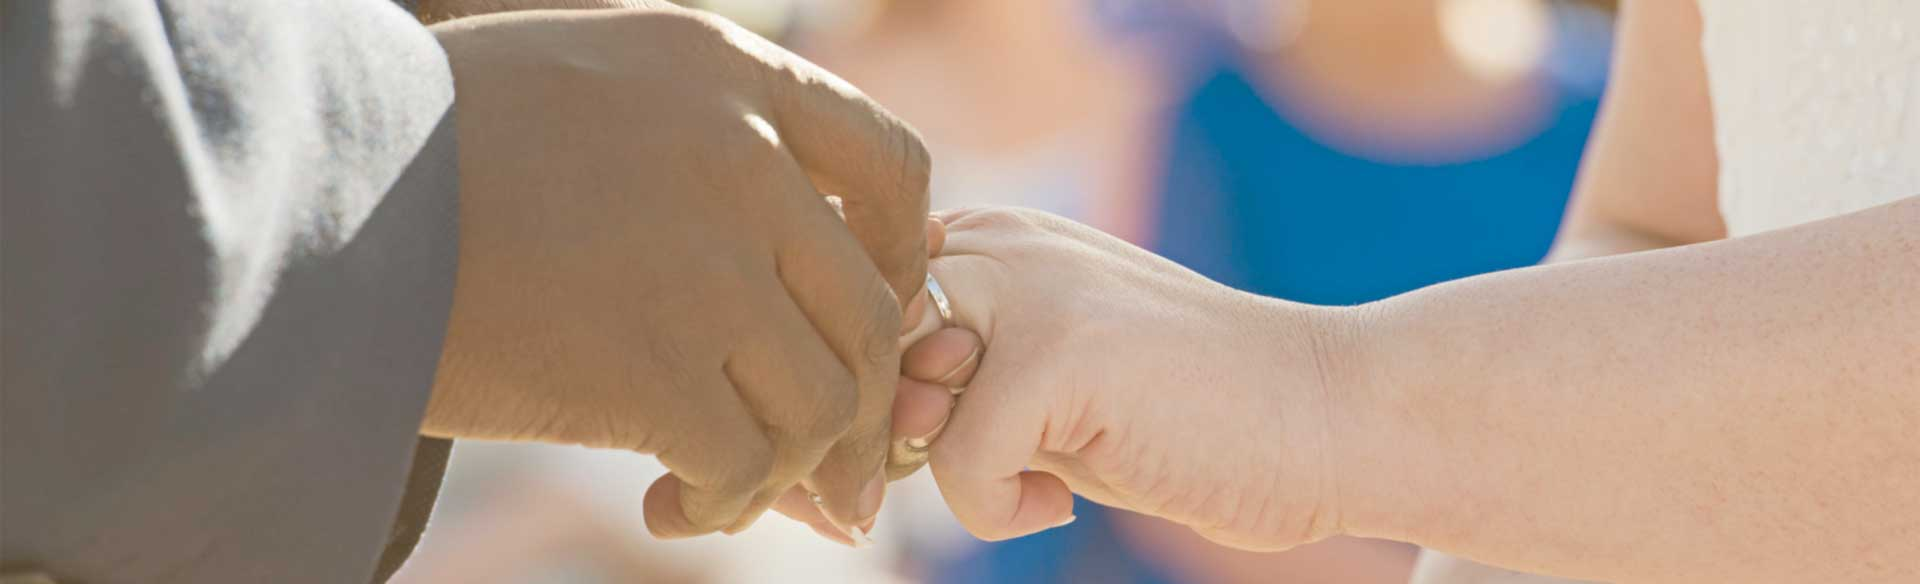 wedding promises and brand promises are meant to to be kept